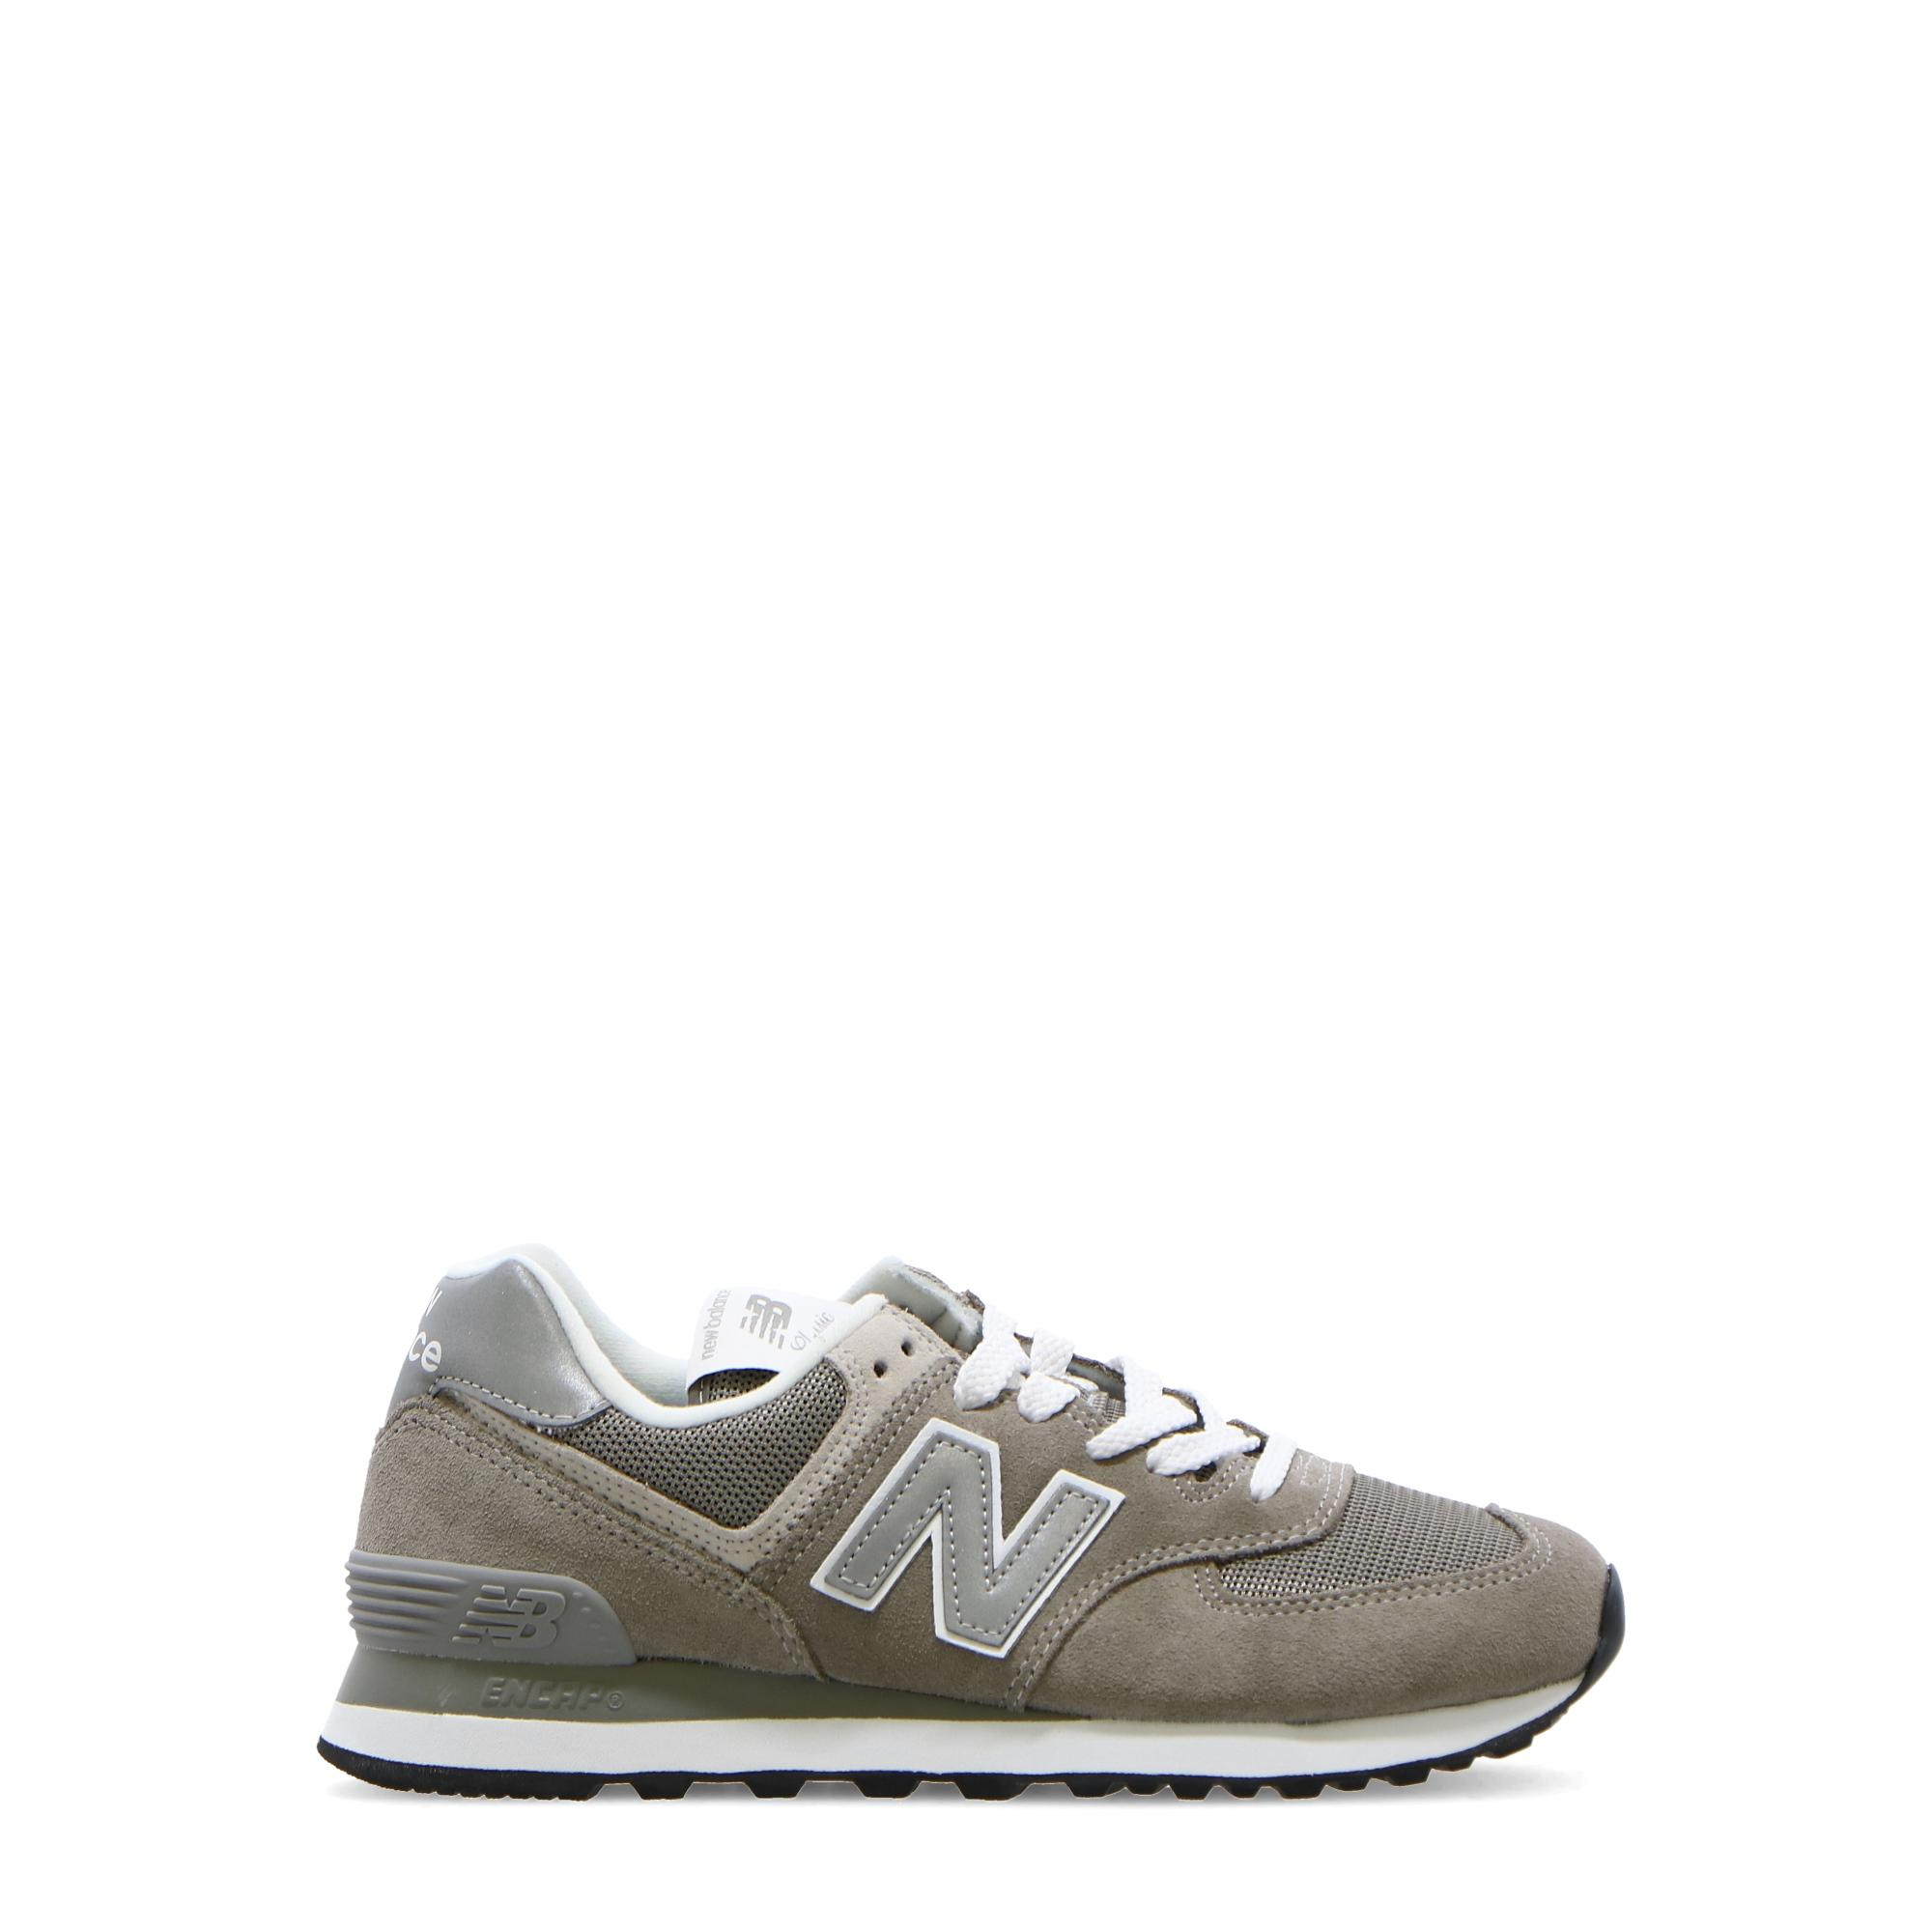 New Balance 574 Metallic Leather GREY